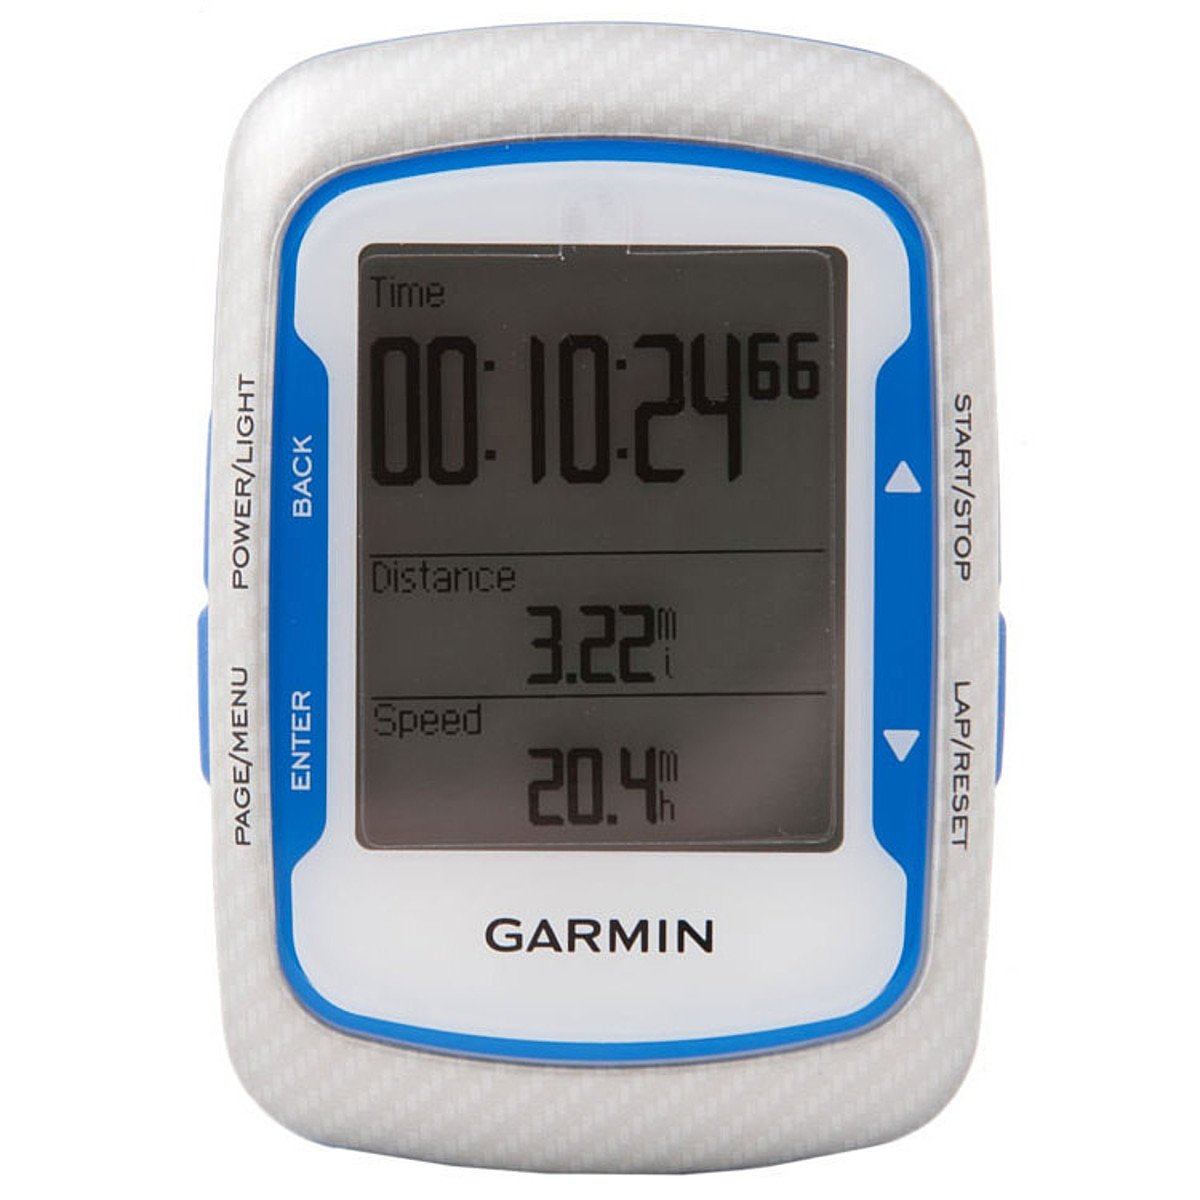 Garmin Edge 500 With Cadence and HRM | Competitive Cyclist